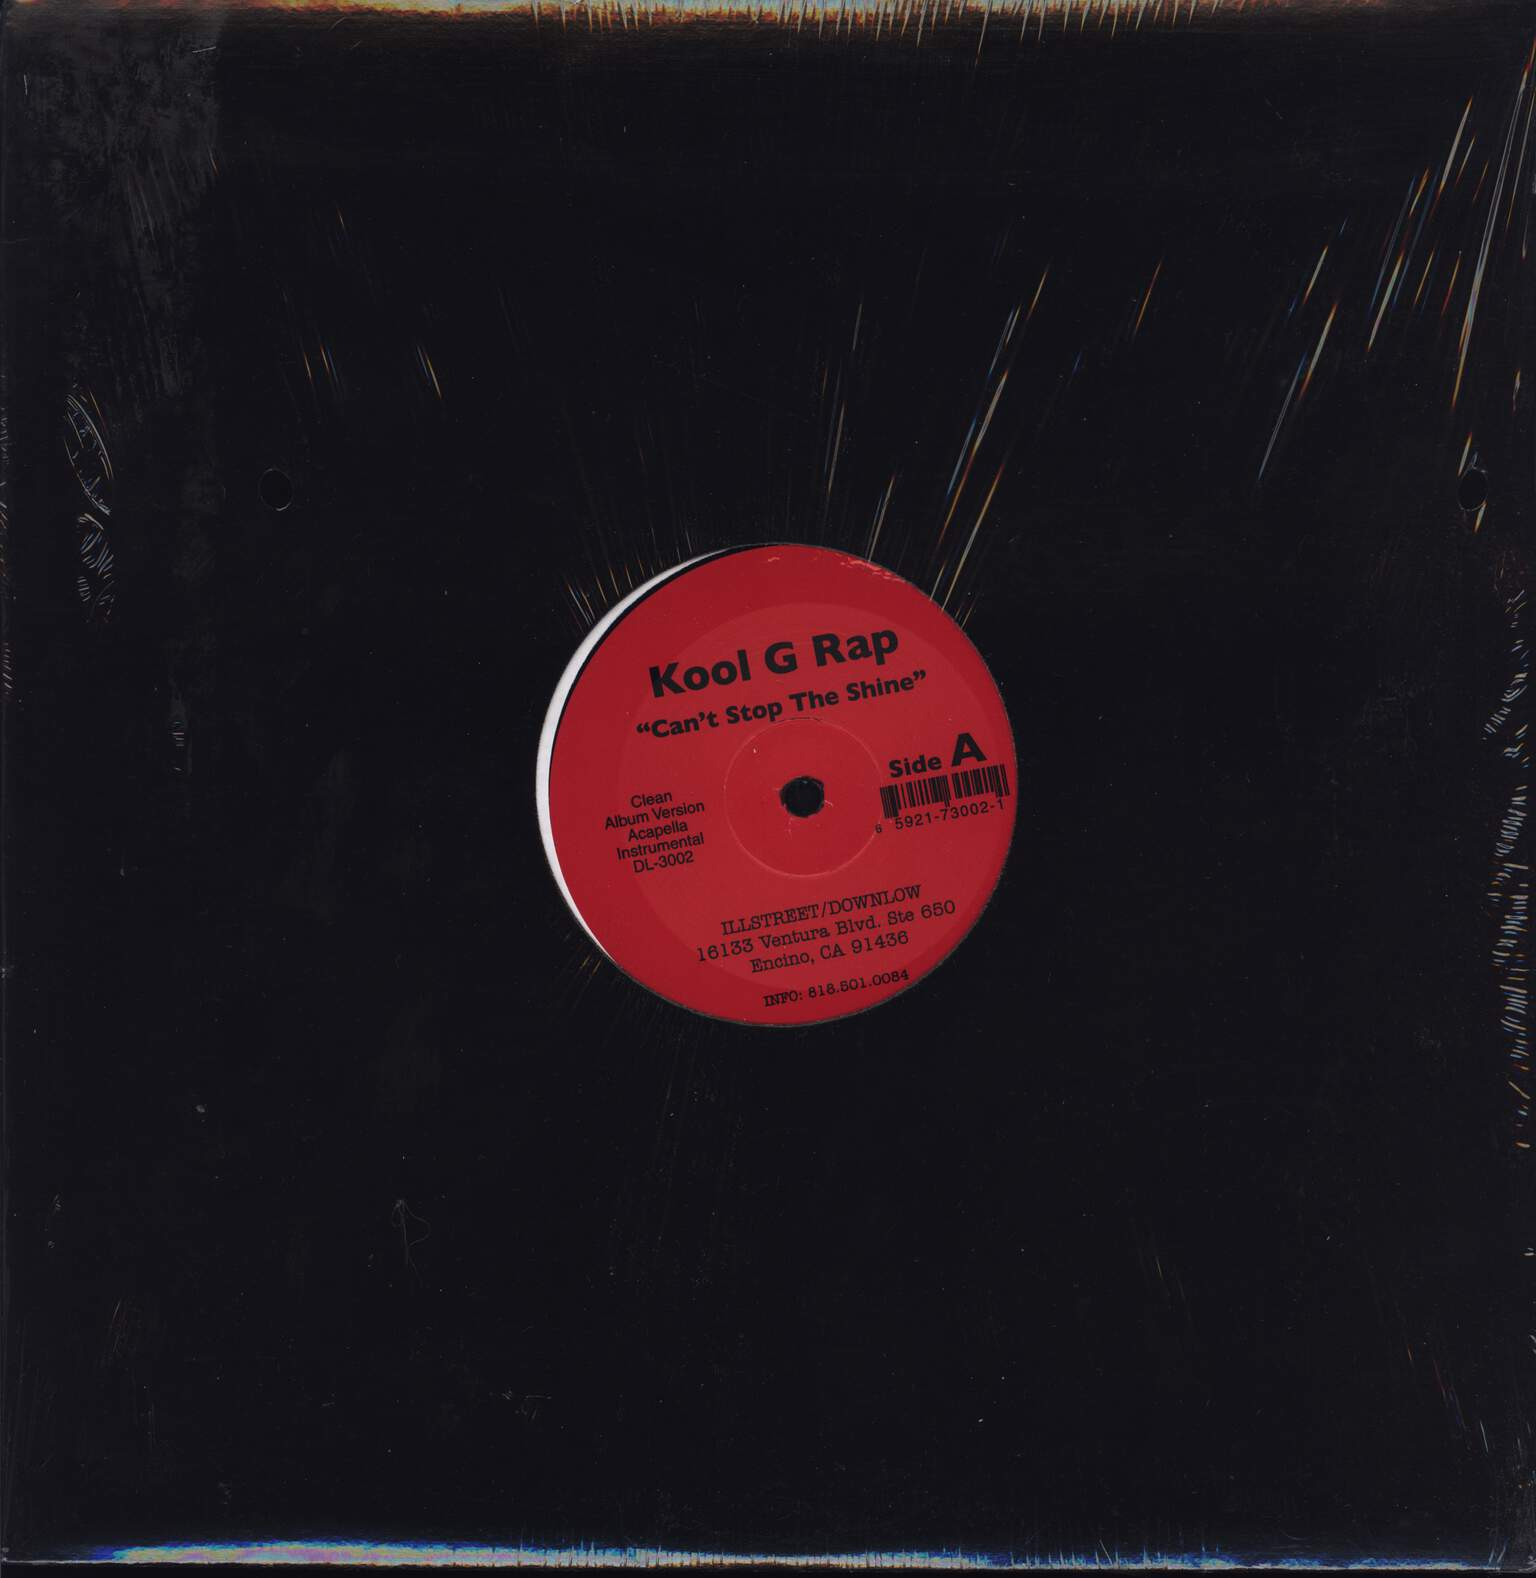 "Kool G Rap: Can't Stop The Shine / Thugs Anthem, 12"" Maxi Single (Vinyl)"